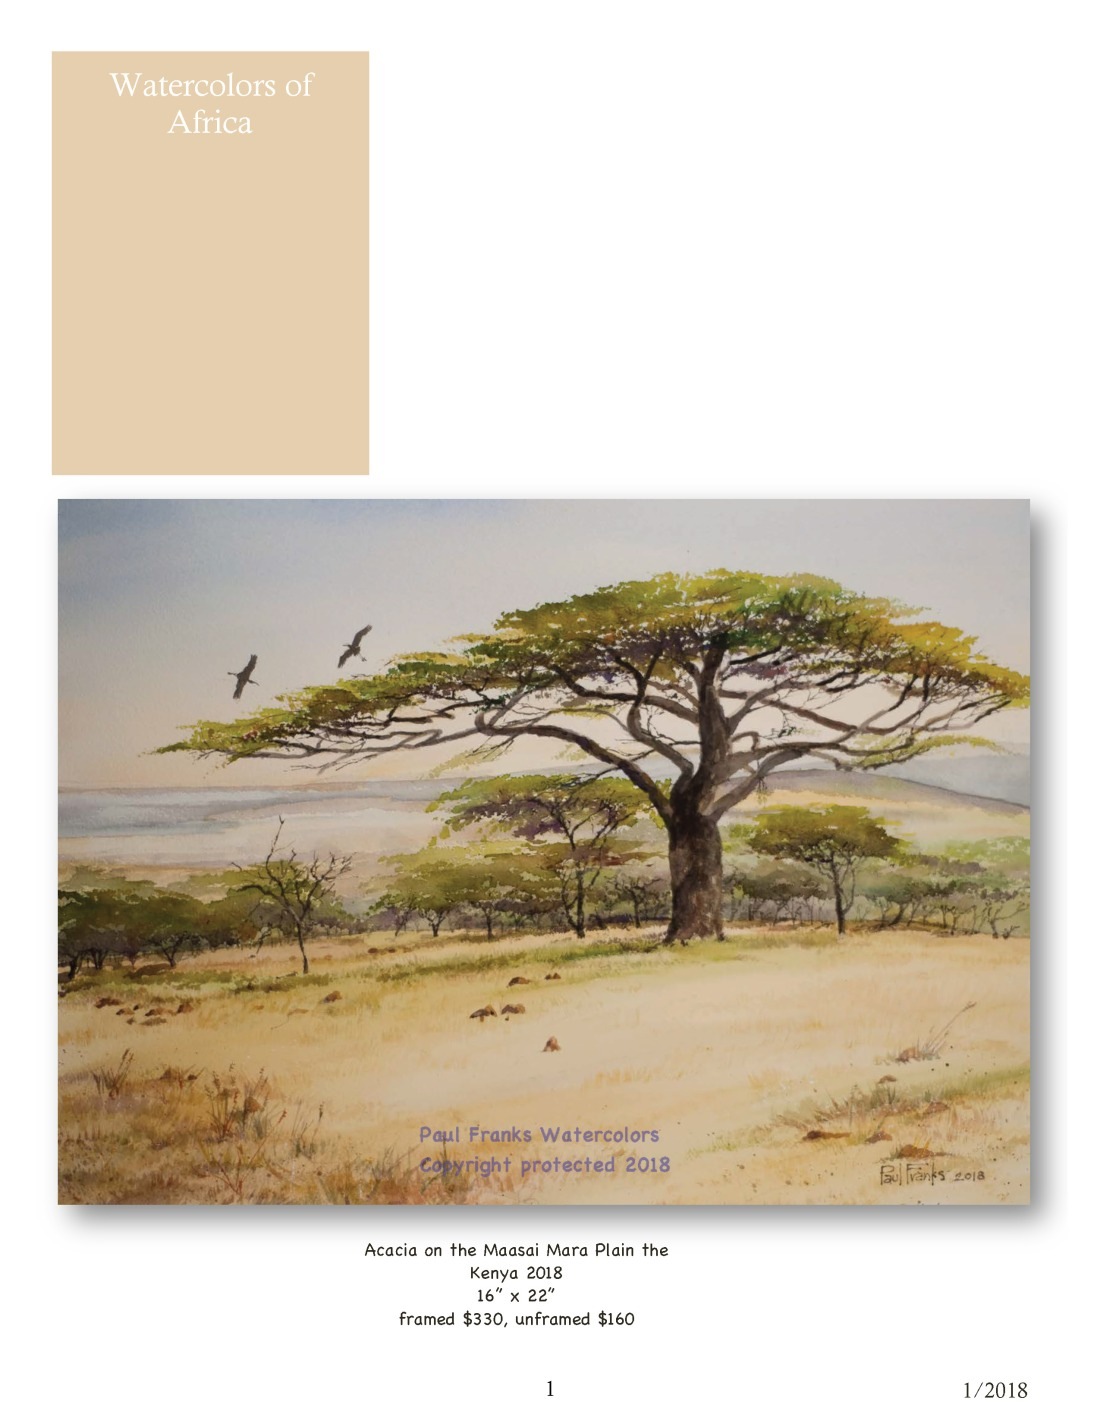 Paul Franks Watercolor Catalog-6 Africa_Page_1